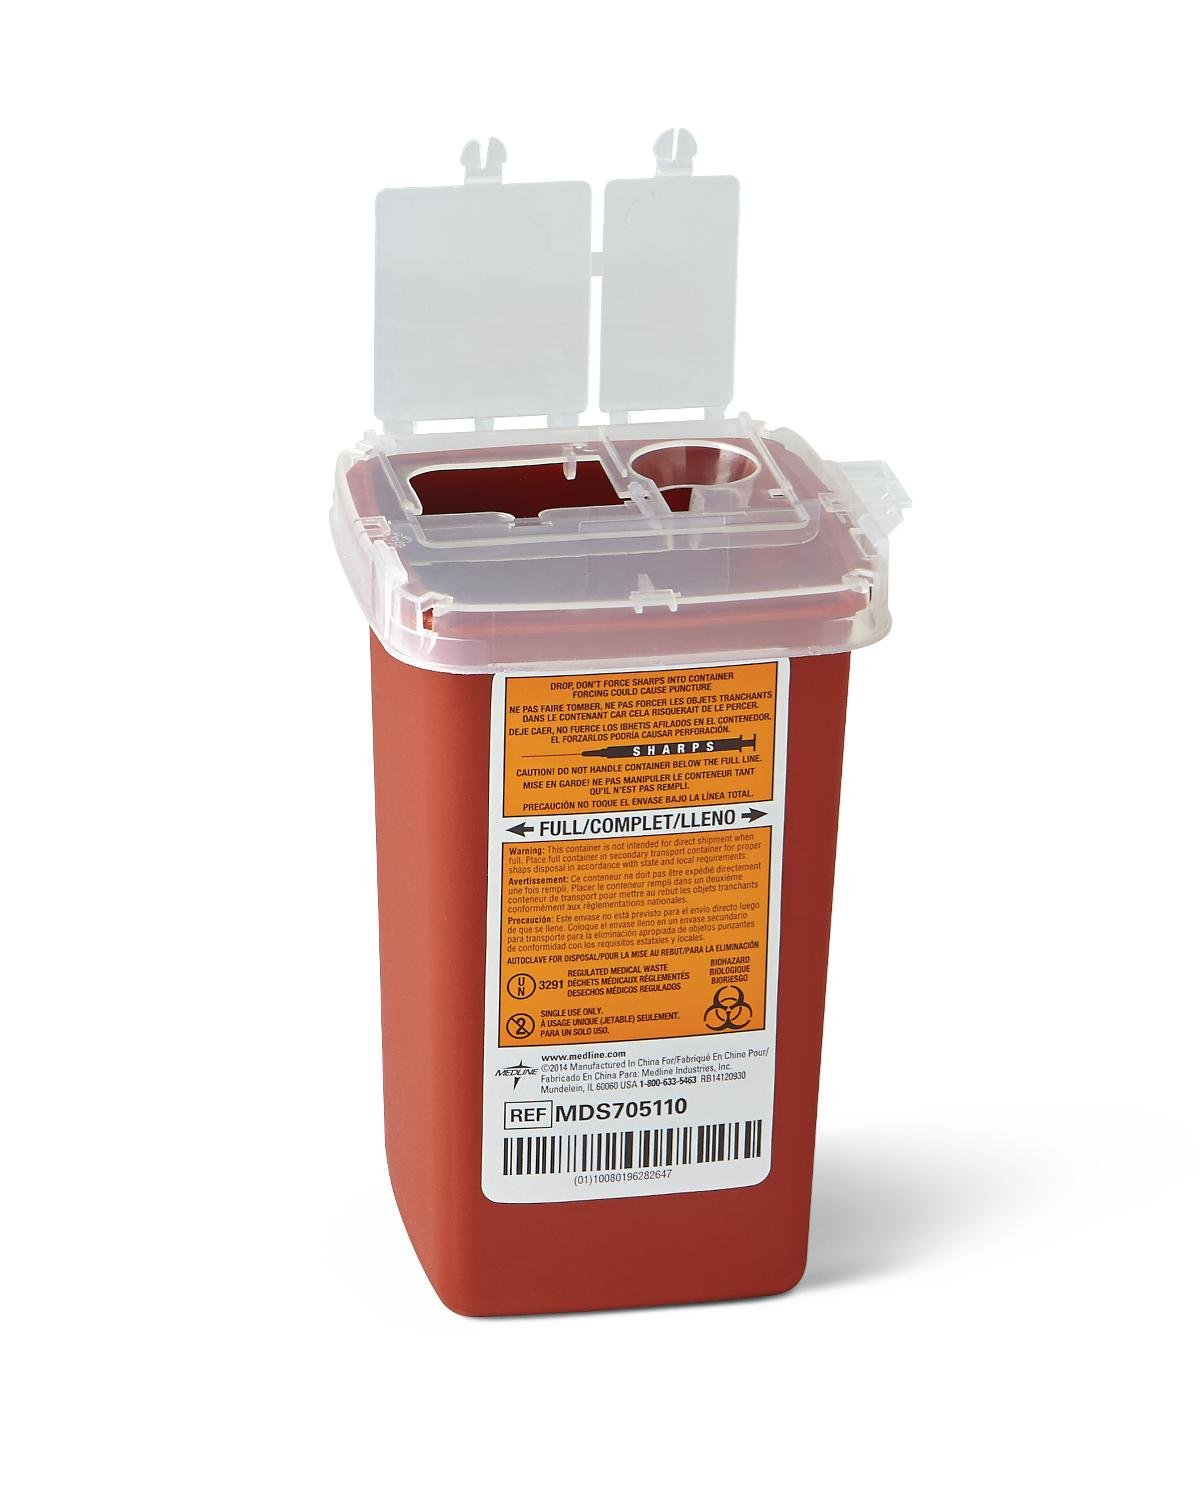 Medline Sharps Container Biohazard Needle Disposal Container - 1 Quart (32 ounce): Industrial & Scientific